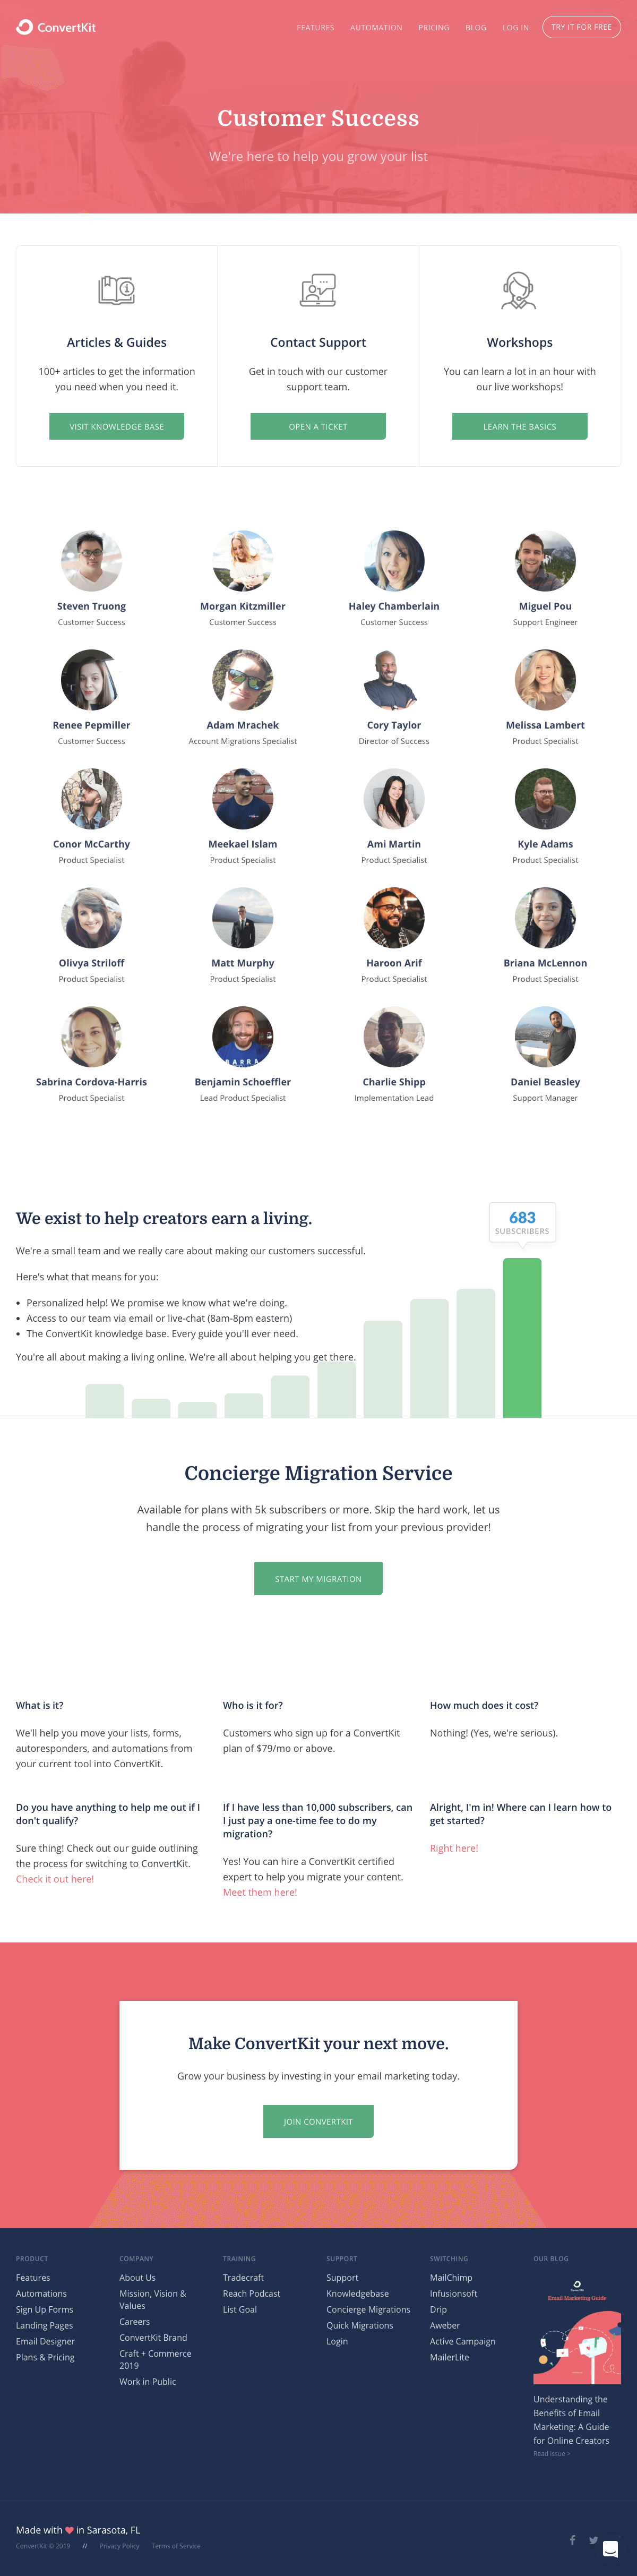 ConvertKit - Support page